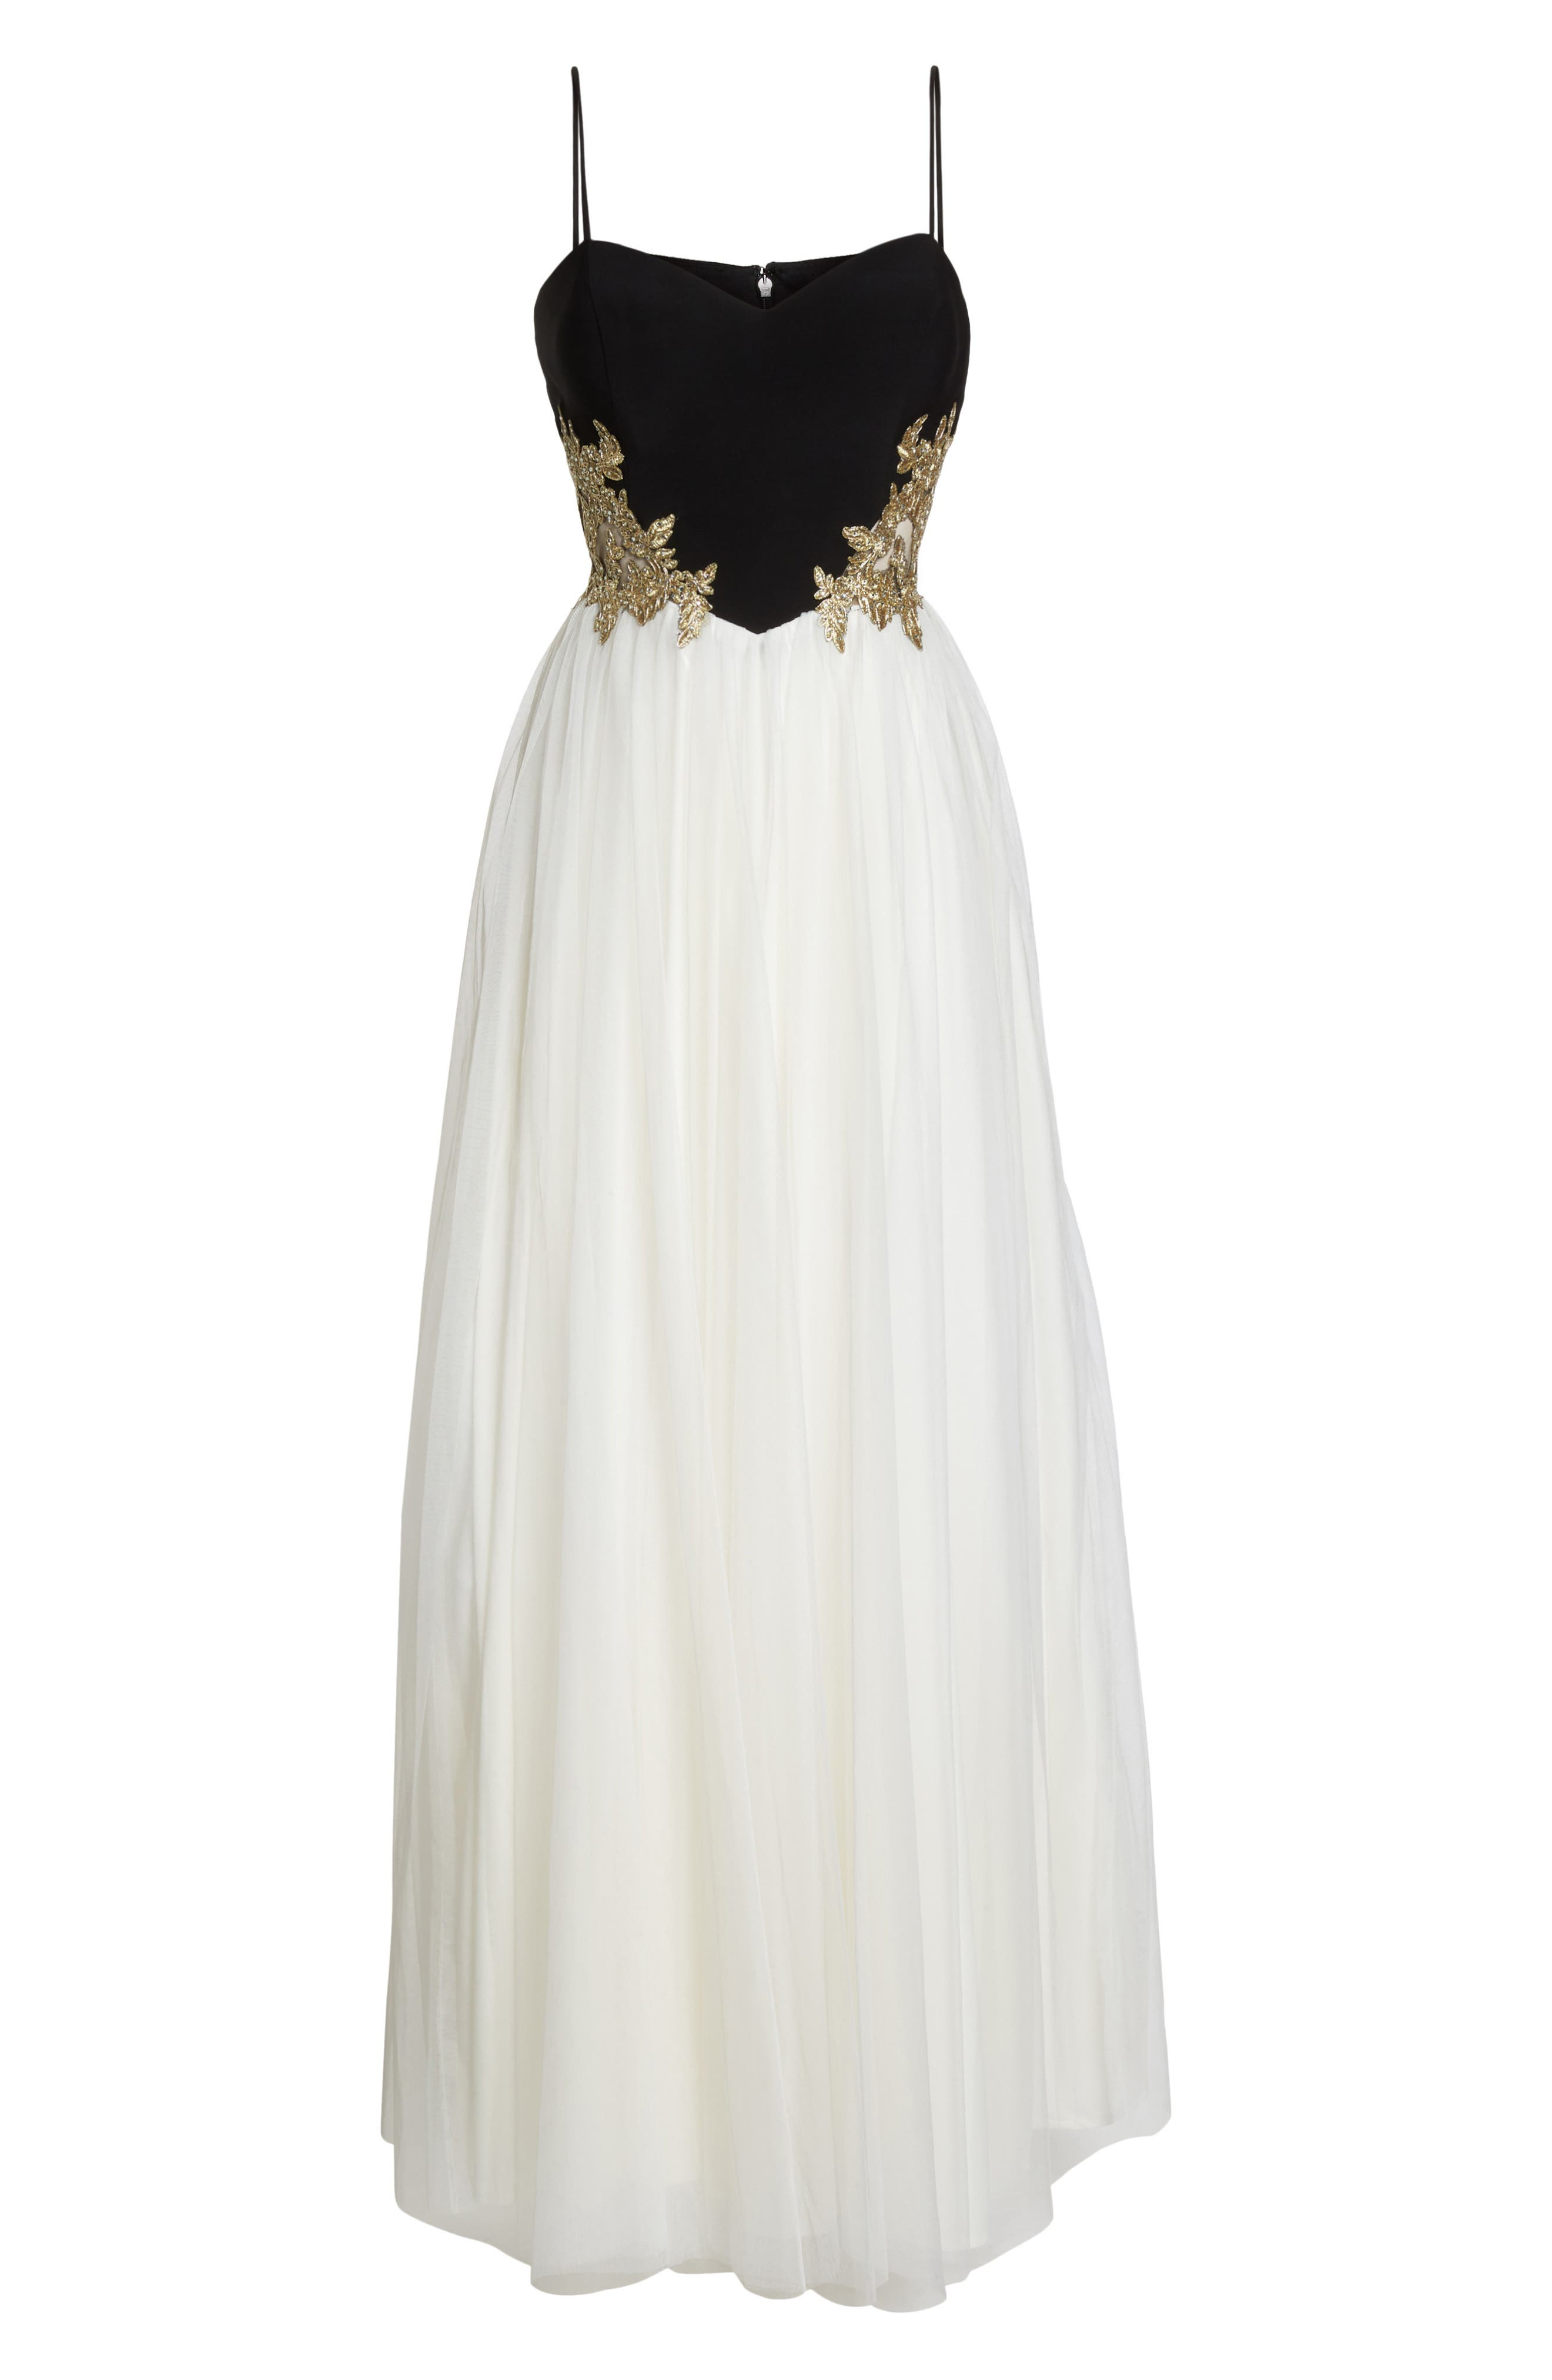 Blondie Nights Embellished Tulle Gown,                             Alternate thumbnail 6, color,                             Black/ Ivory/ Gold